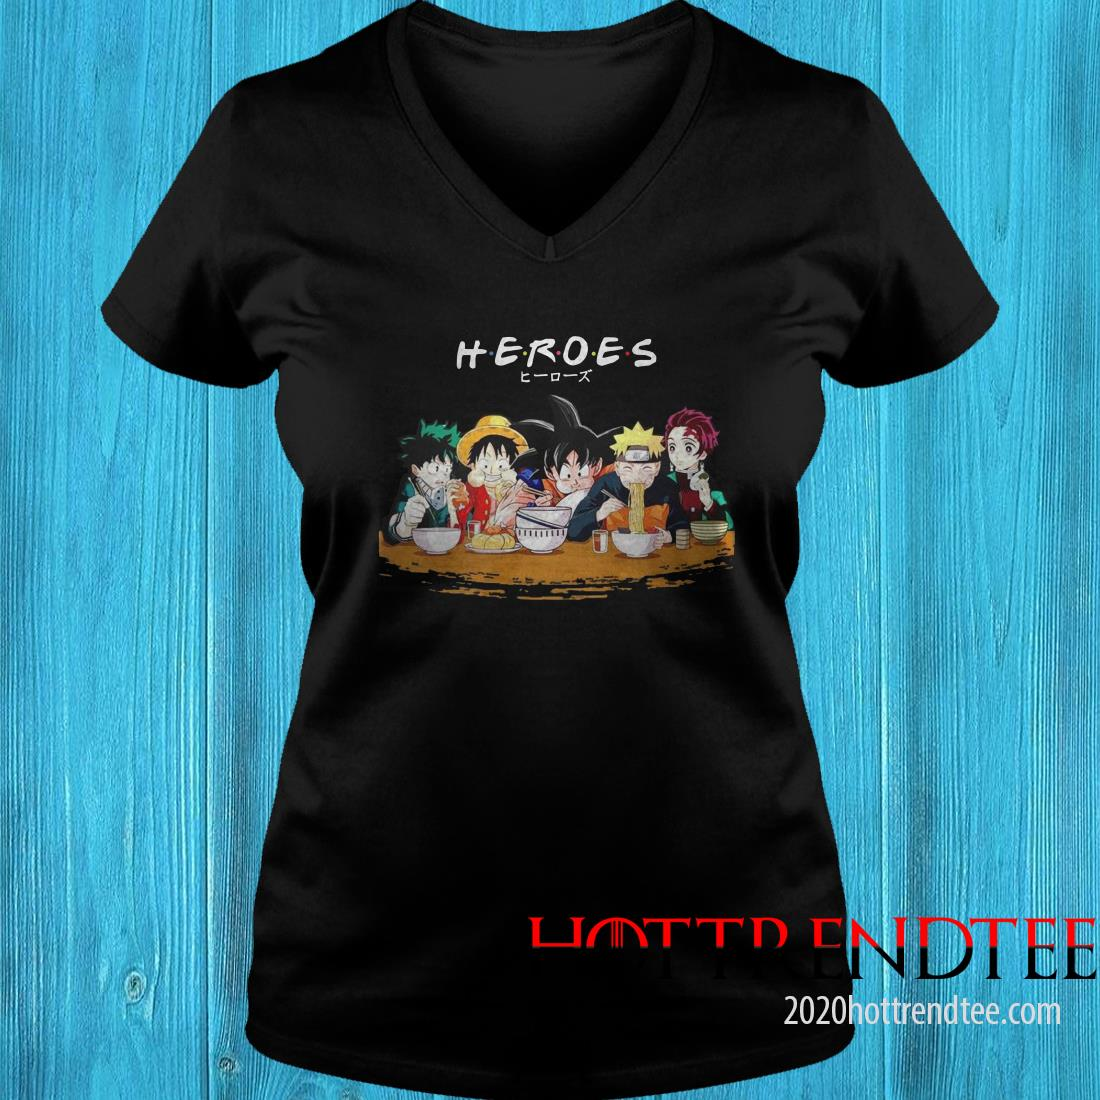 Mashup Heroes Characters Anime Eat Together Women's T-Shirt